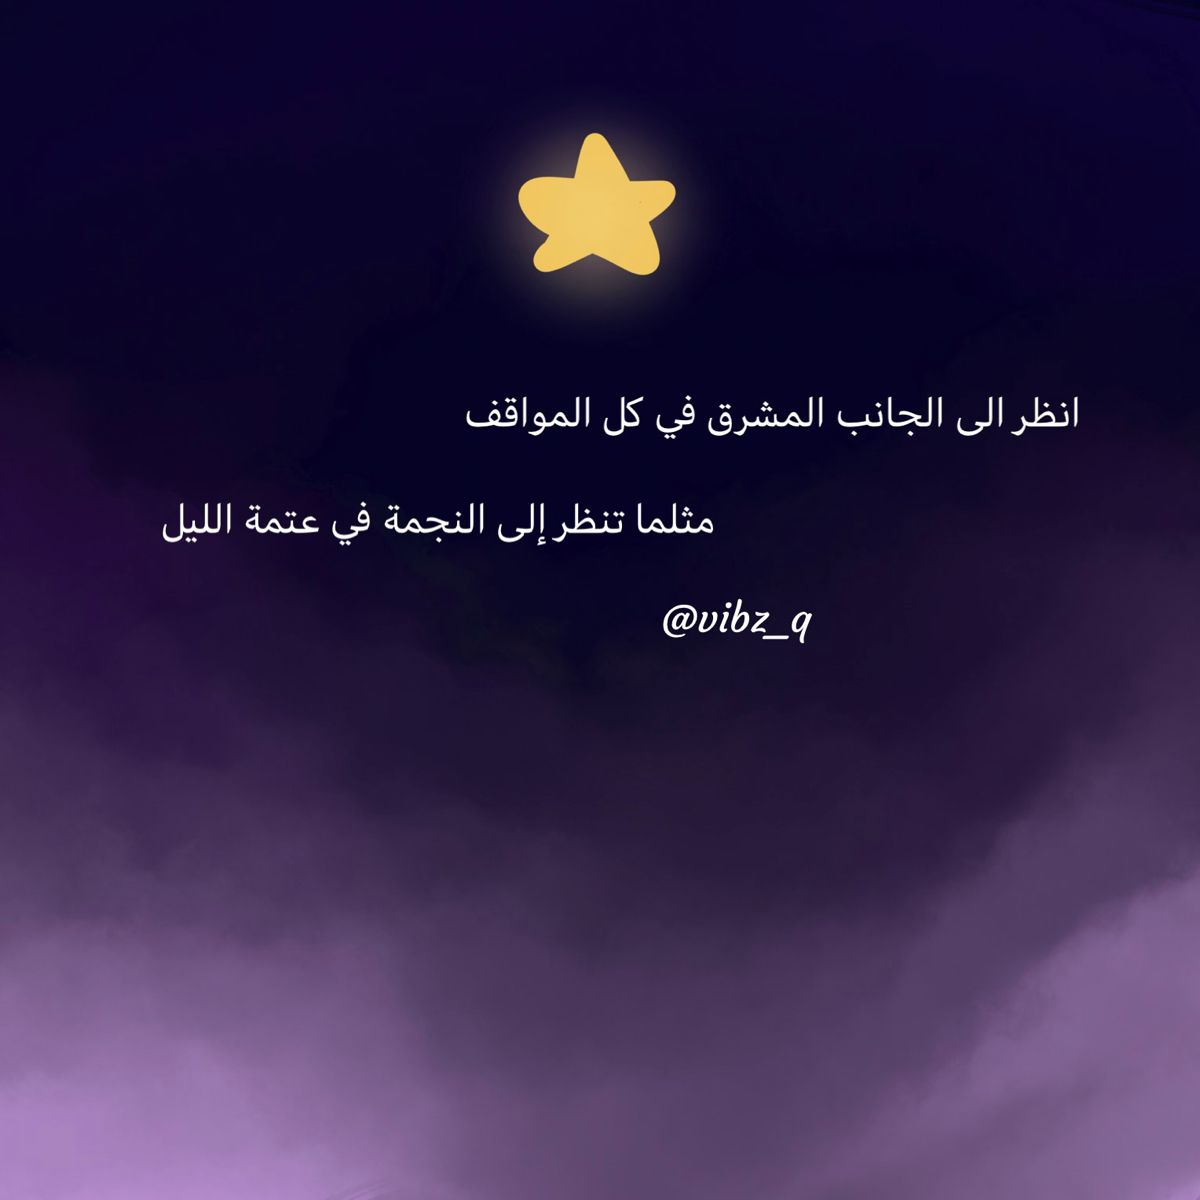 Pin By Vibz Q On Quote Ramadan Quotes Photo Quotes Motivational Quotes For Life